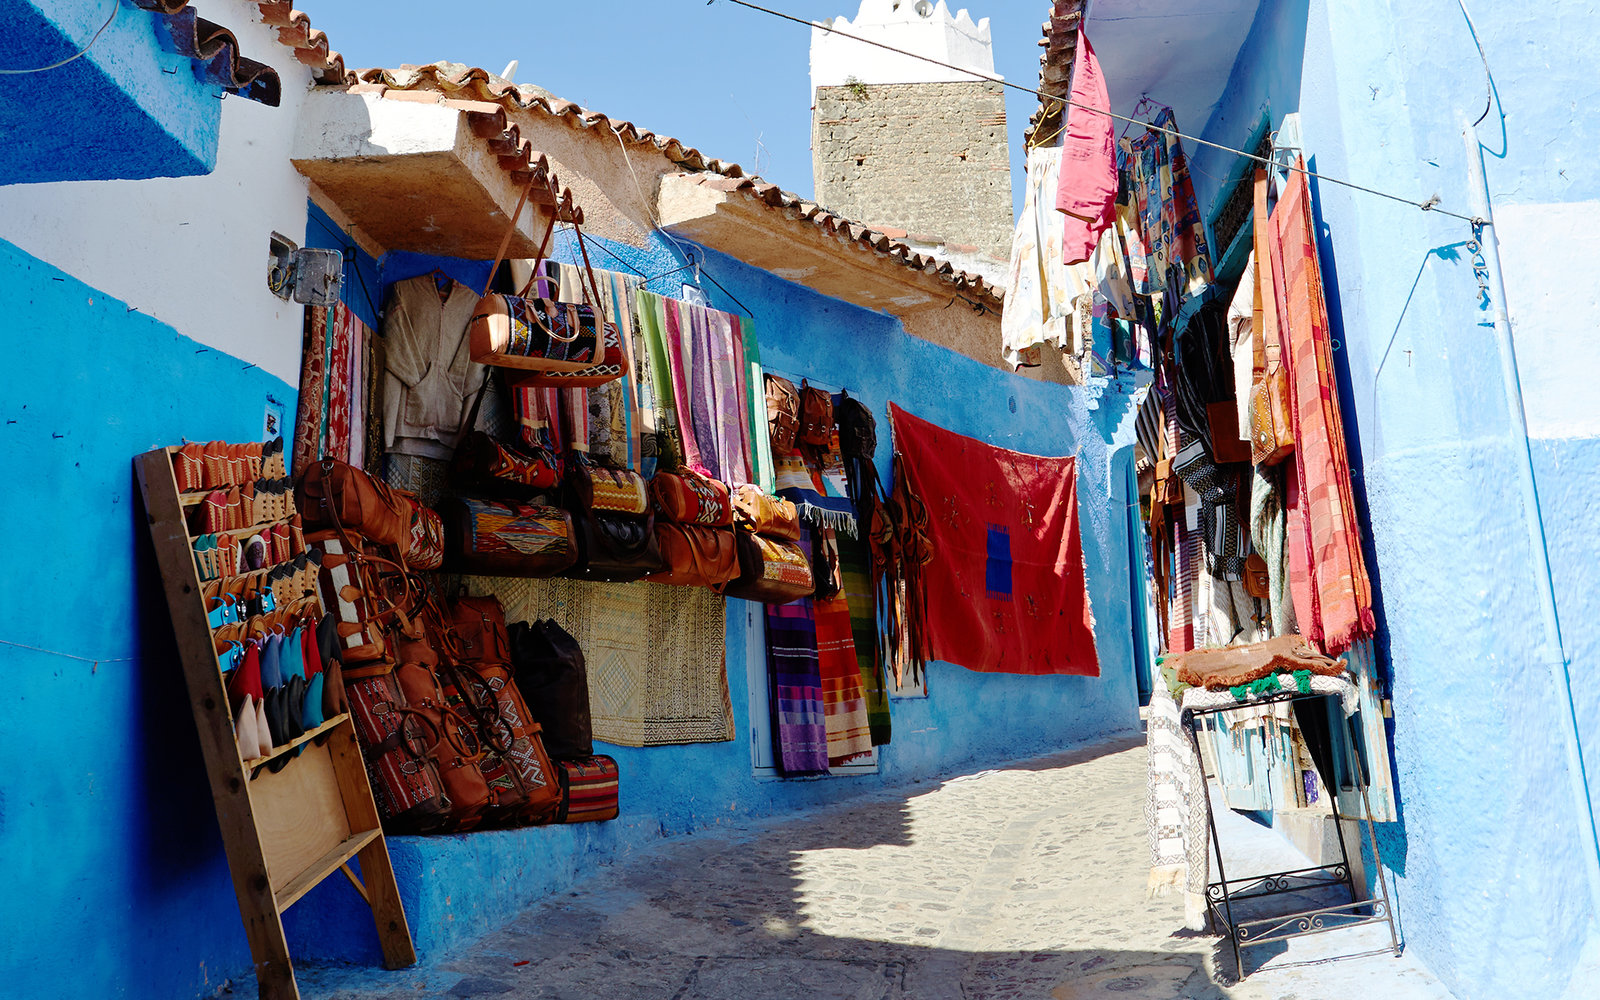 Street Vendors in Chefchaouen Morocco